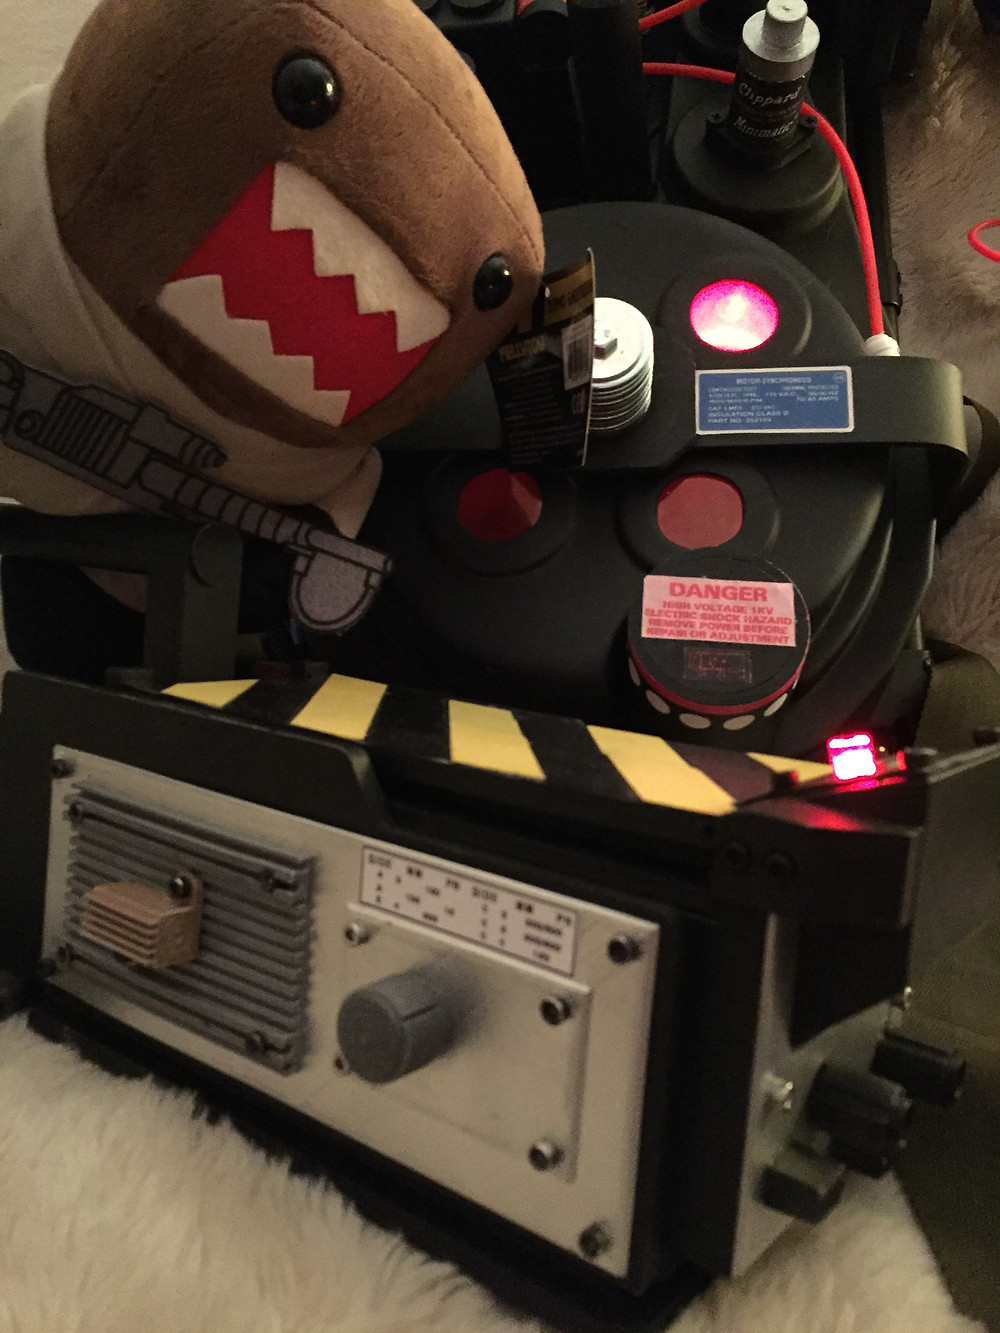 Ghostbusters proton pack and ghost trap with Ghostbuster Domo plush.